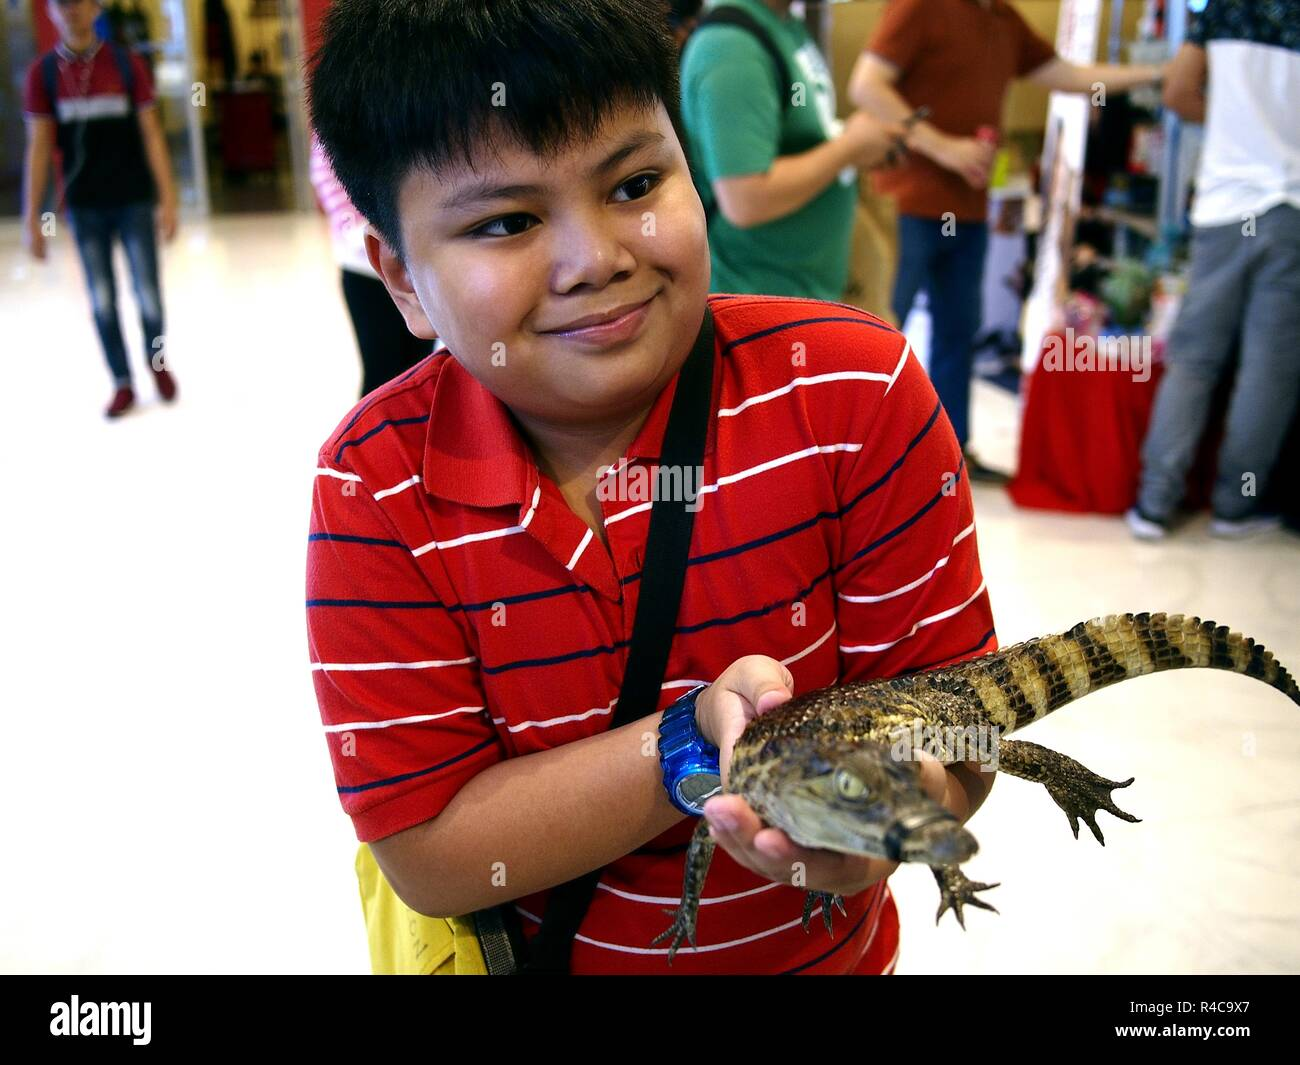 QUEZON CITY, PHILIPPINES - NOVEMBER 18, 2018: A young Asian boy holds a live young Caiman at a pet store. Stock Photo